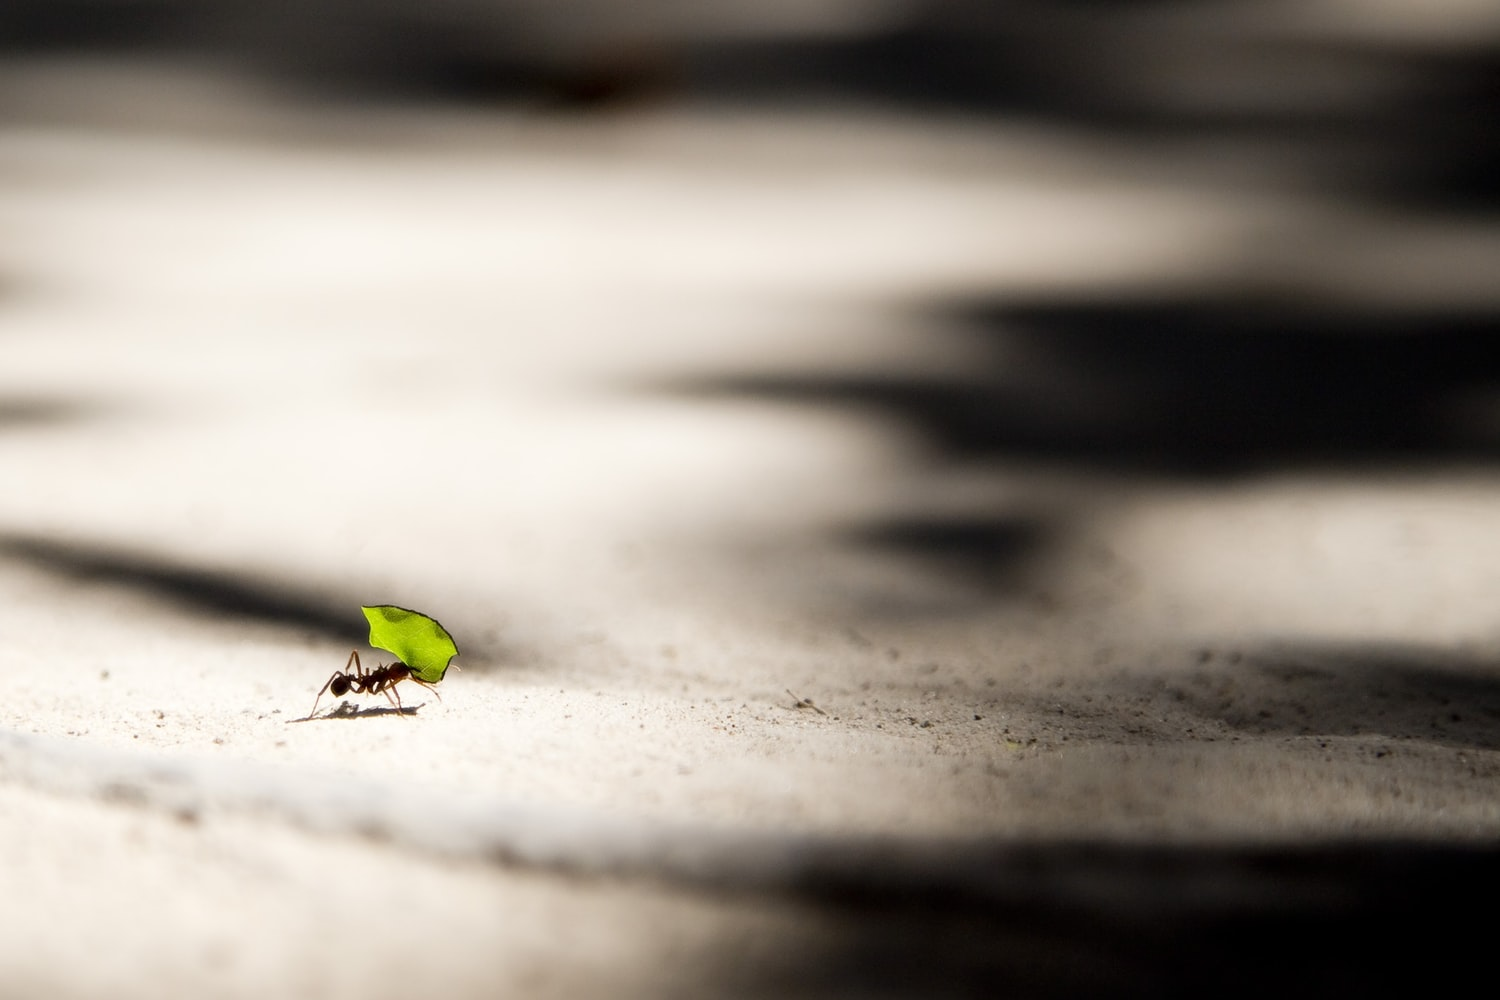 ant carrying green piece of food